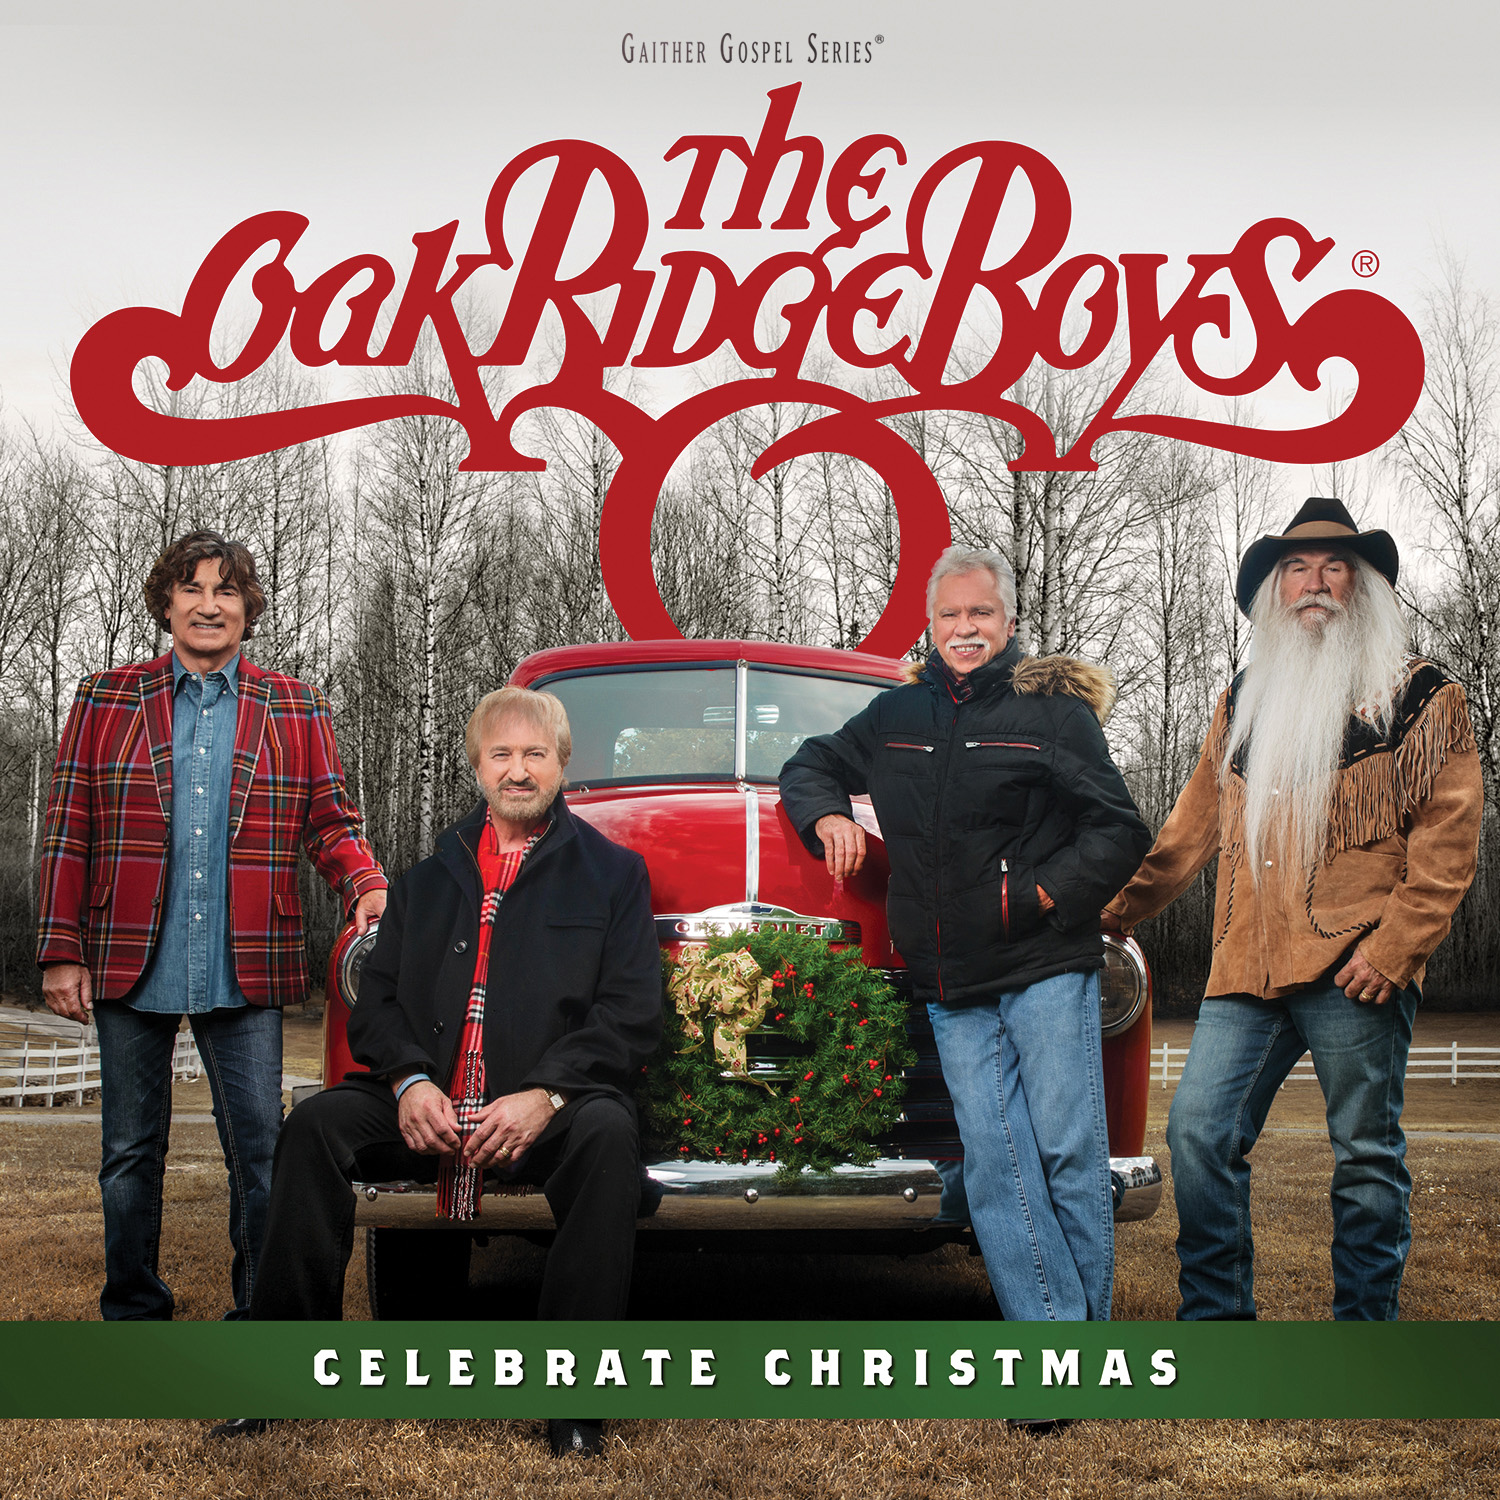 The Oak Ridge Boys 'Celebrate Christmas' available at Cracker Barrel®Old Country Store locations